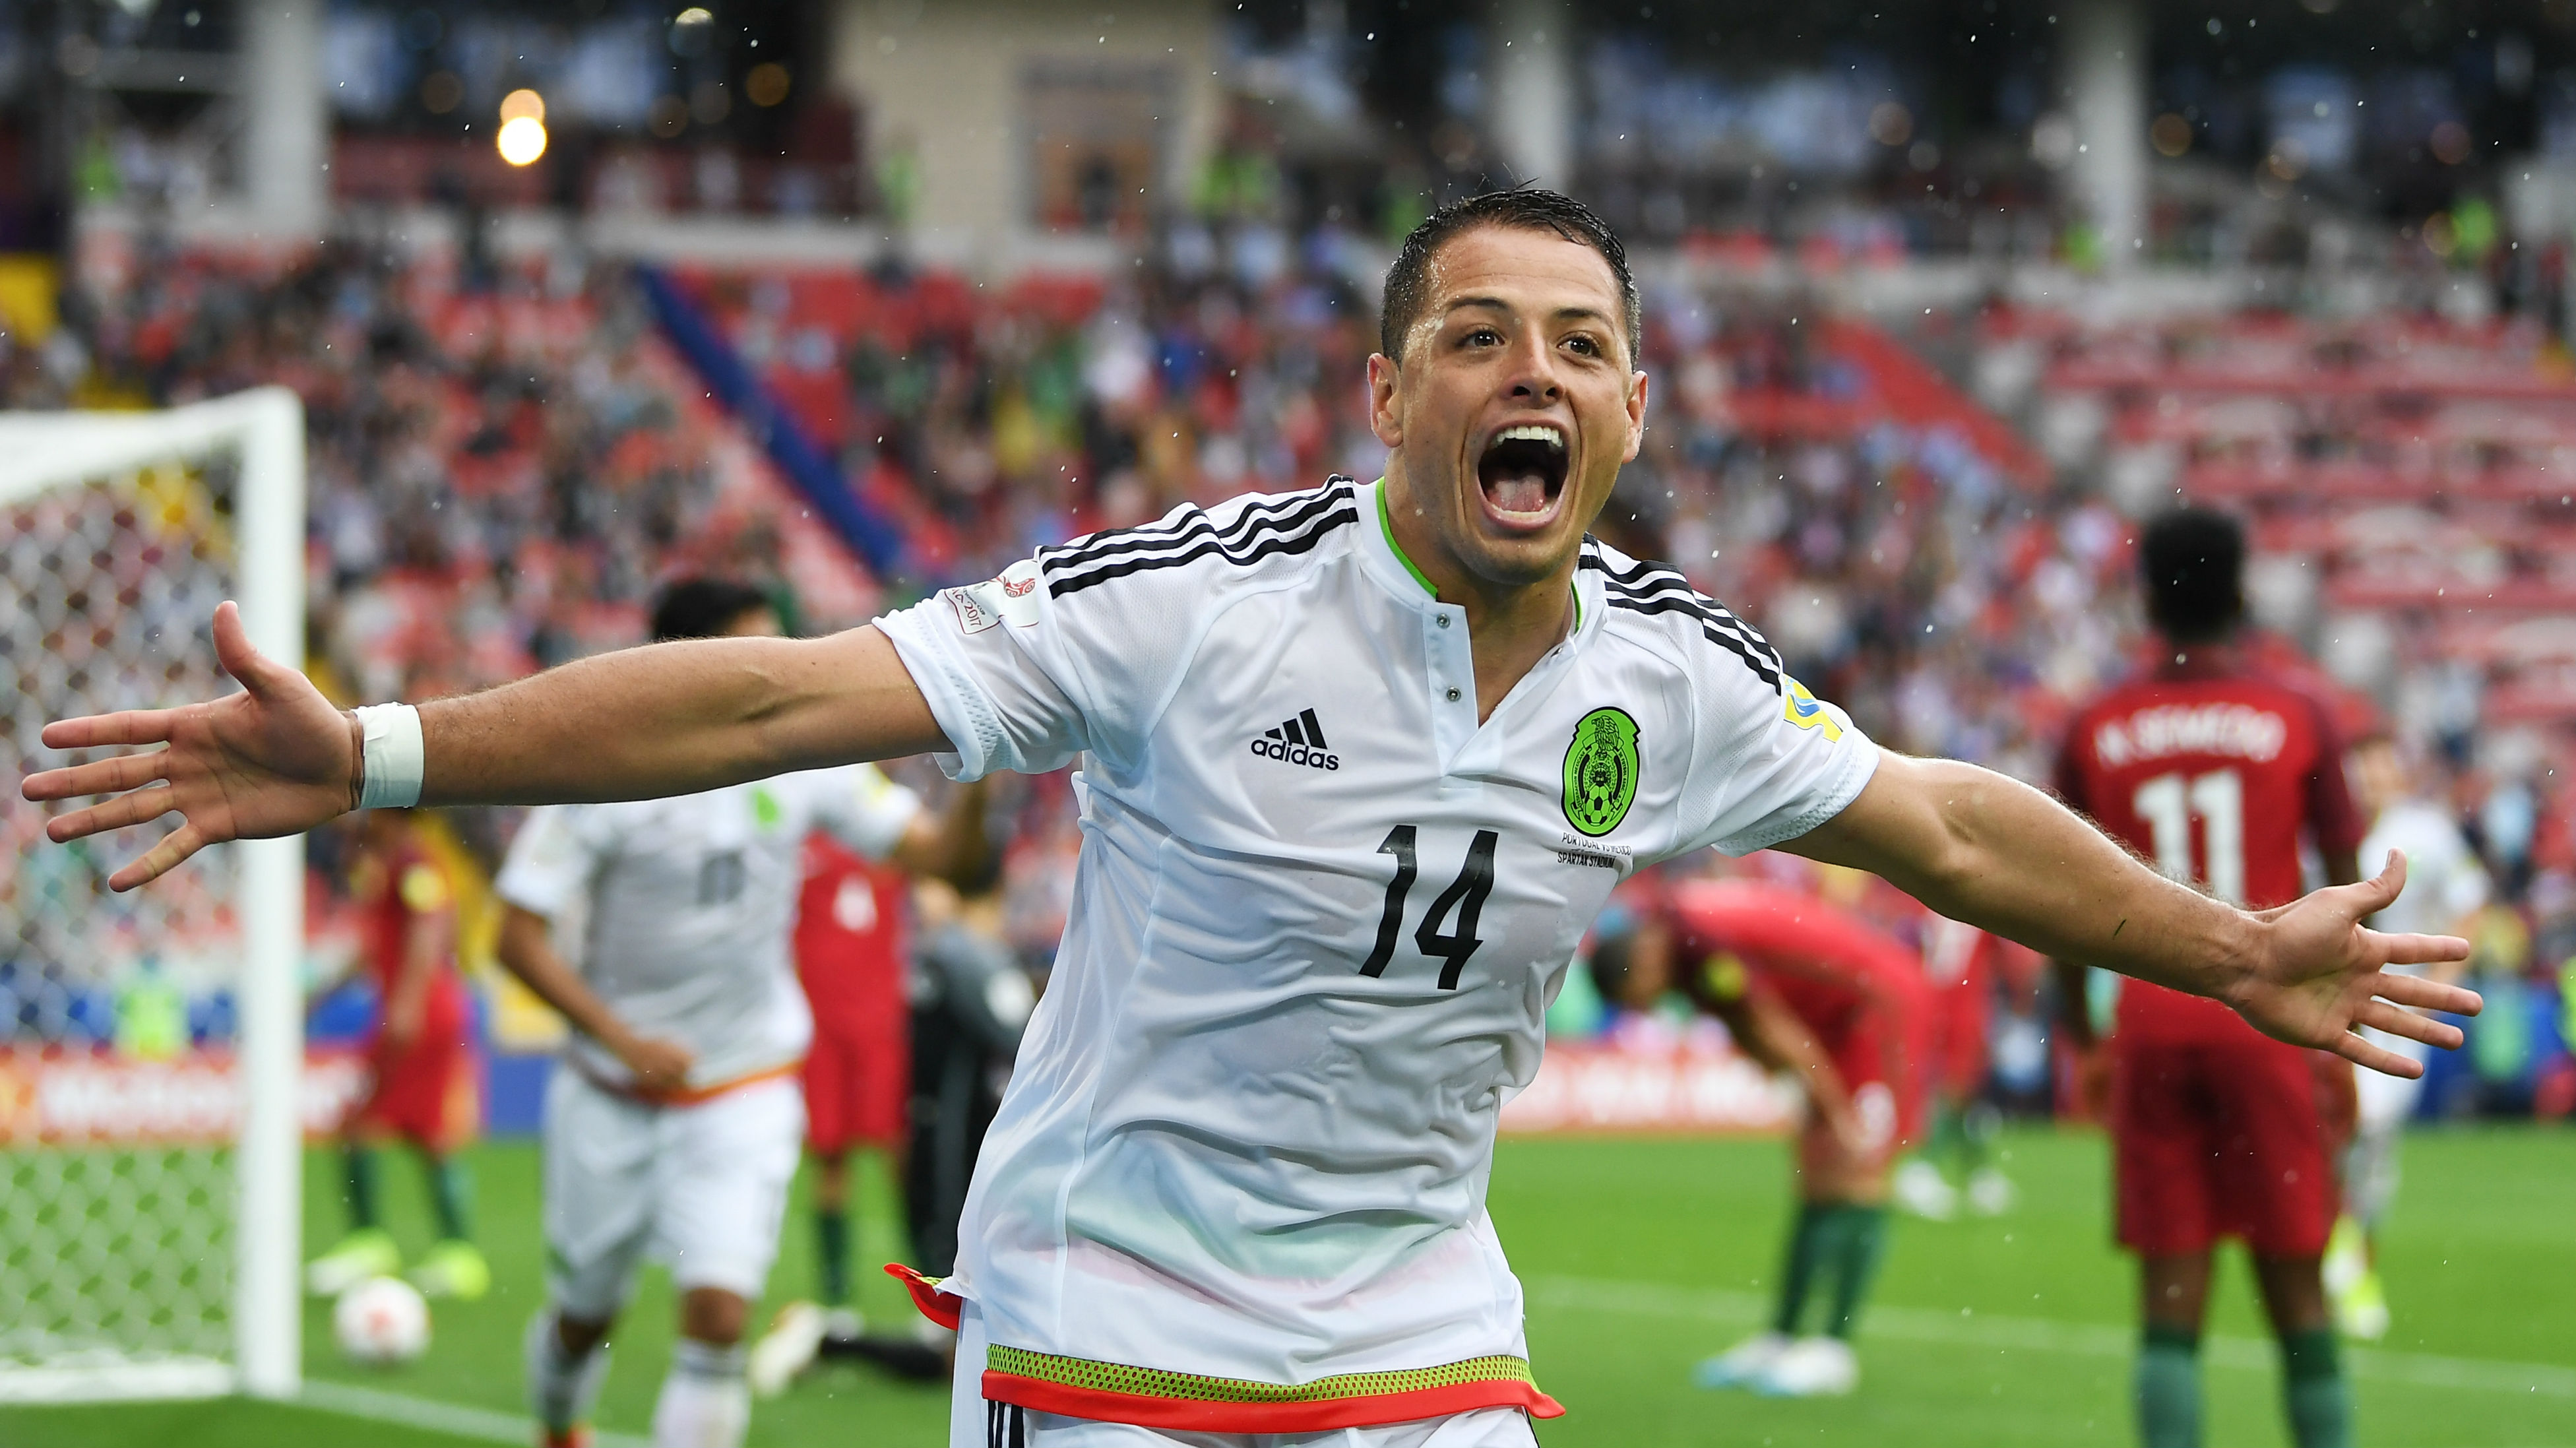 Mexico's 2018 World Cup Roster: Who Joins Chicharito